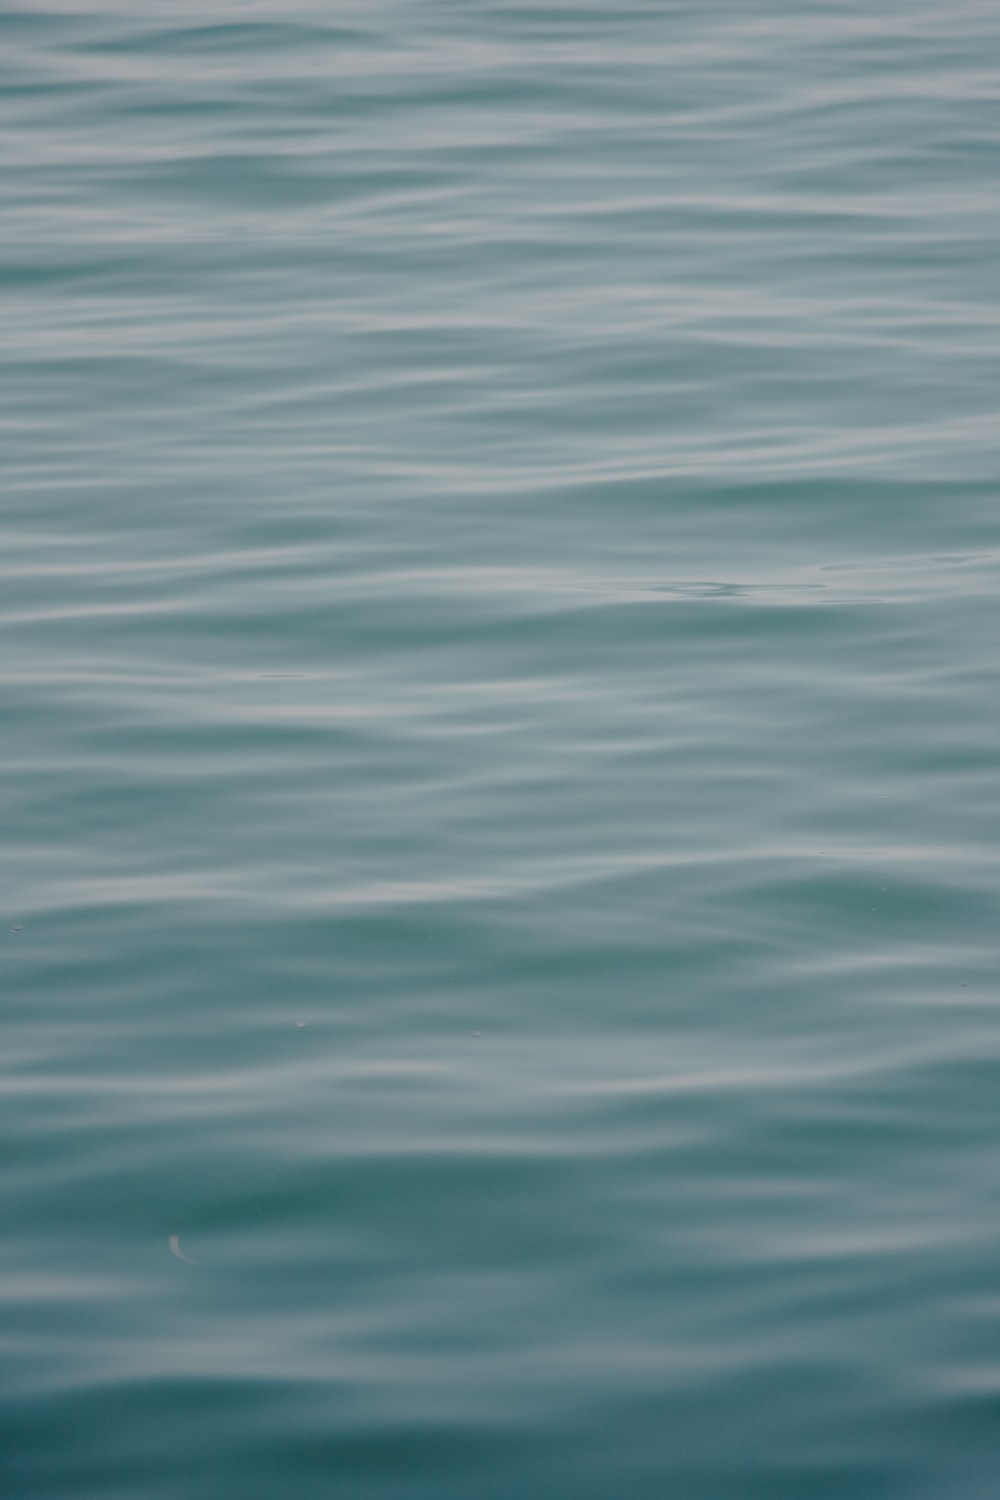 body of water close-up photography